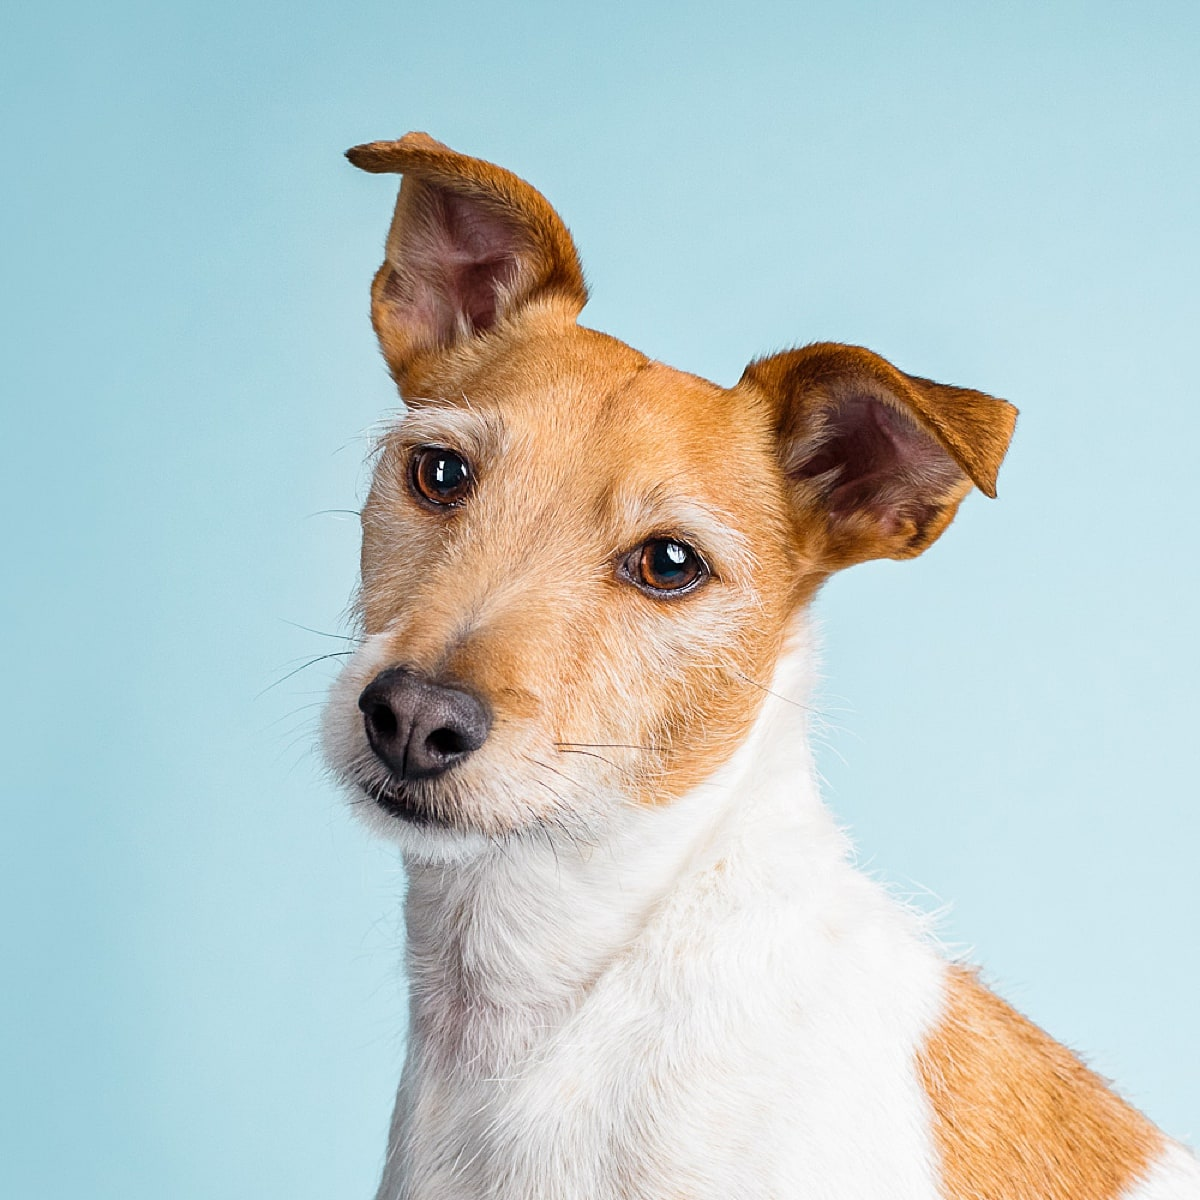 Studio photograph of Frank the tan and white Jack Russell Terrier